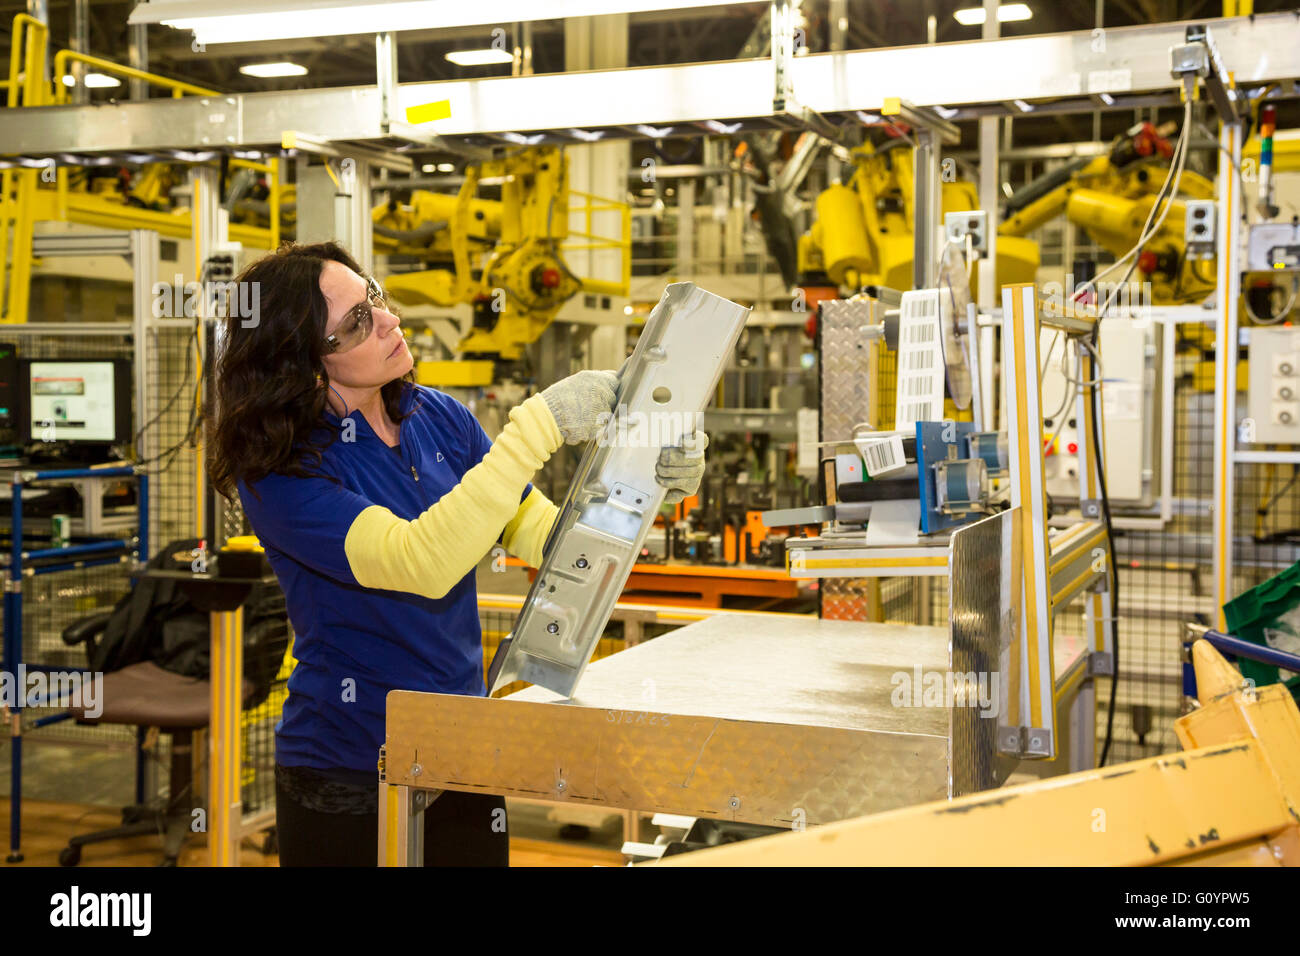 Windsor, Ontario, Canada. 6th May, 2016. Fiat Chrysler Automobiles' Windsor Assembly Plant, where FCA is launching - Stock Image